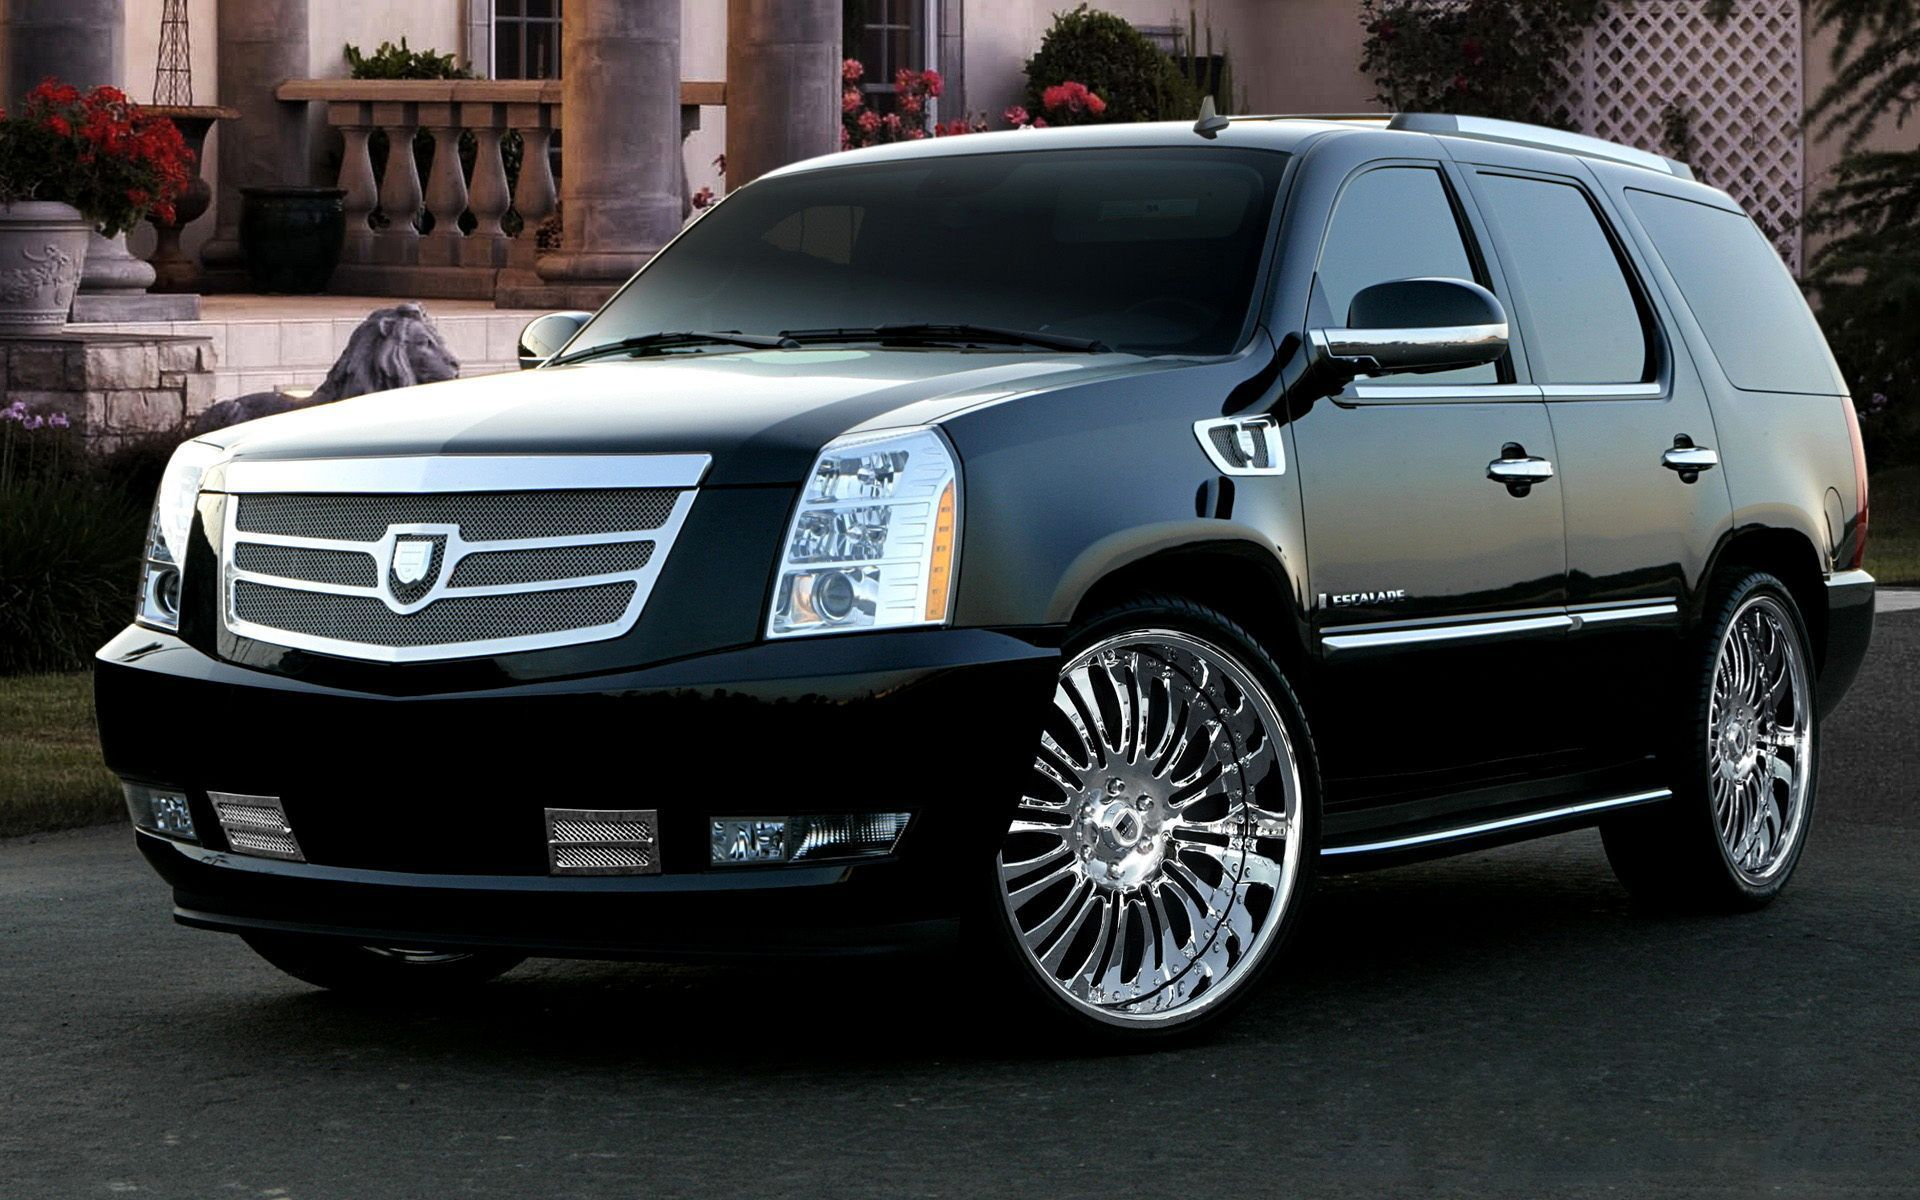 Reserve Airport Limousine Services At www.IndyLimoTransport.Com